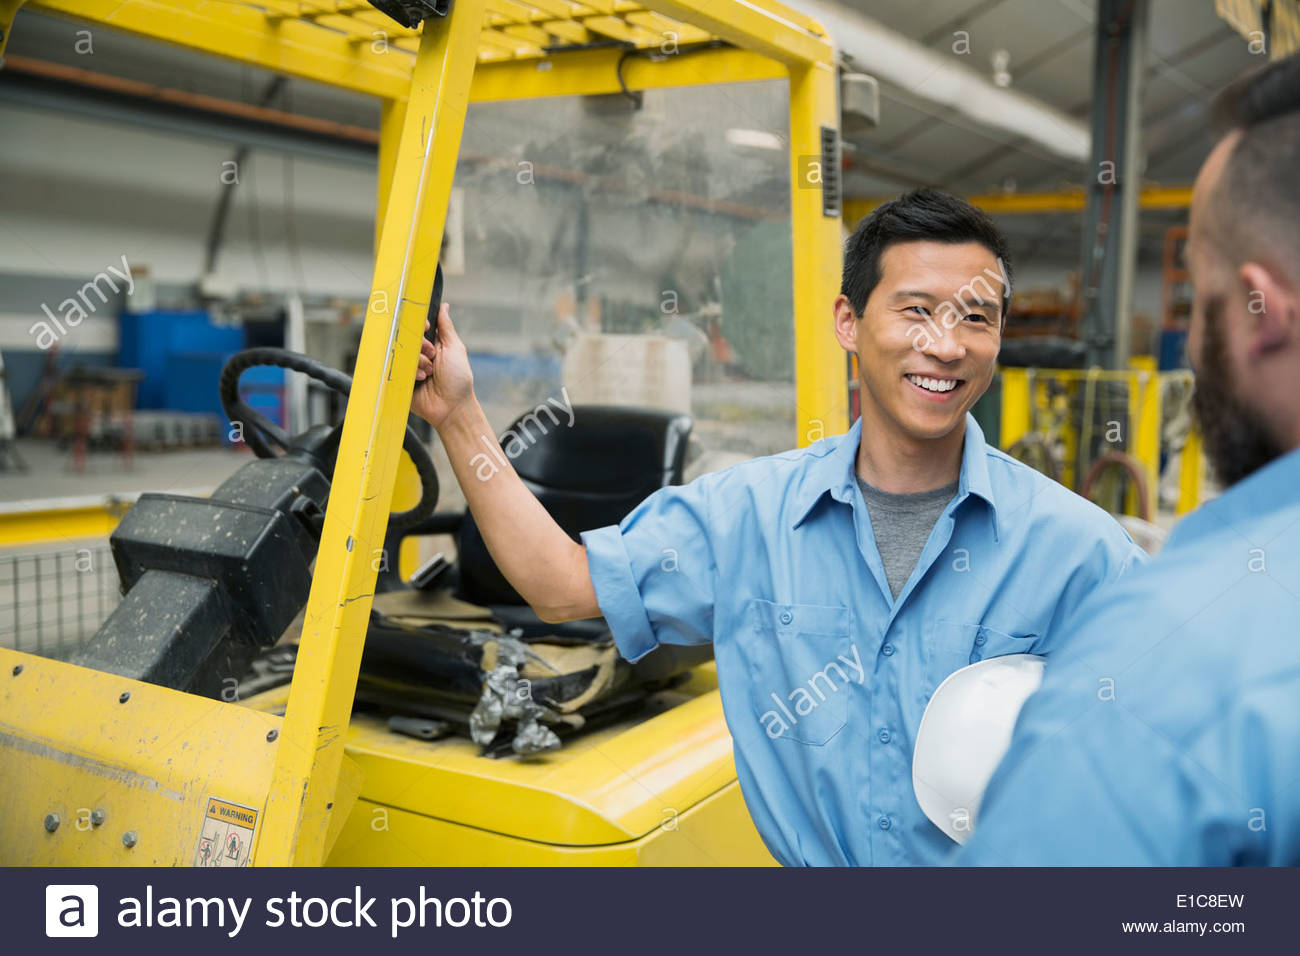 Workers talking at forklift in factory - Stock Image